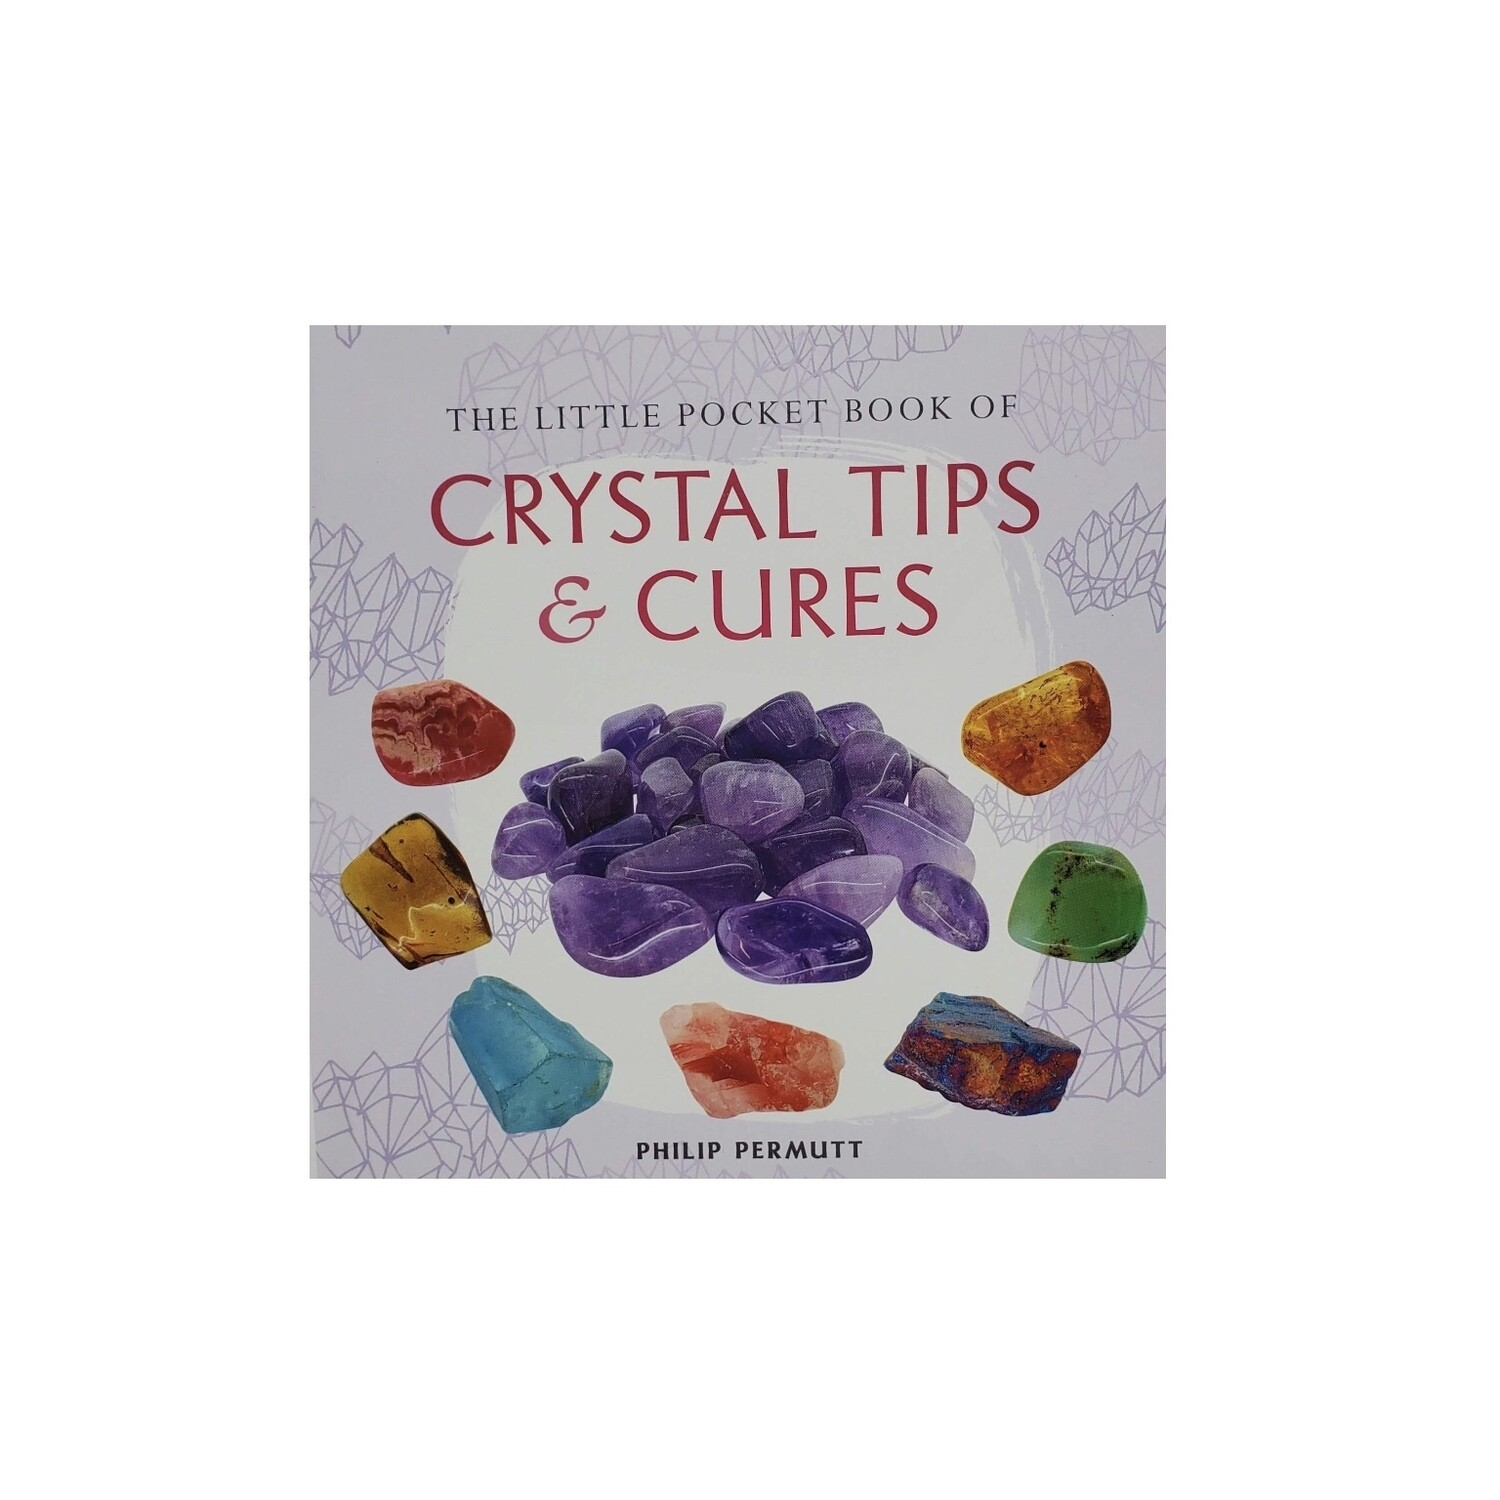 LITTLE POCKET BOOK OF CRYSTALS